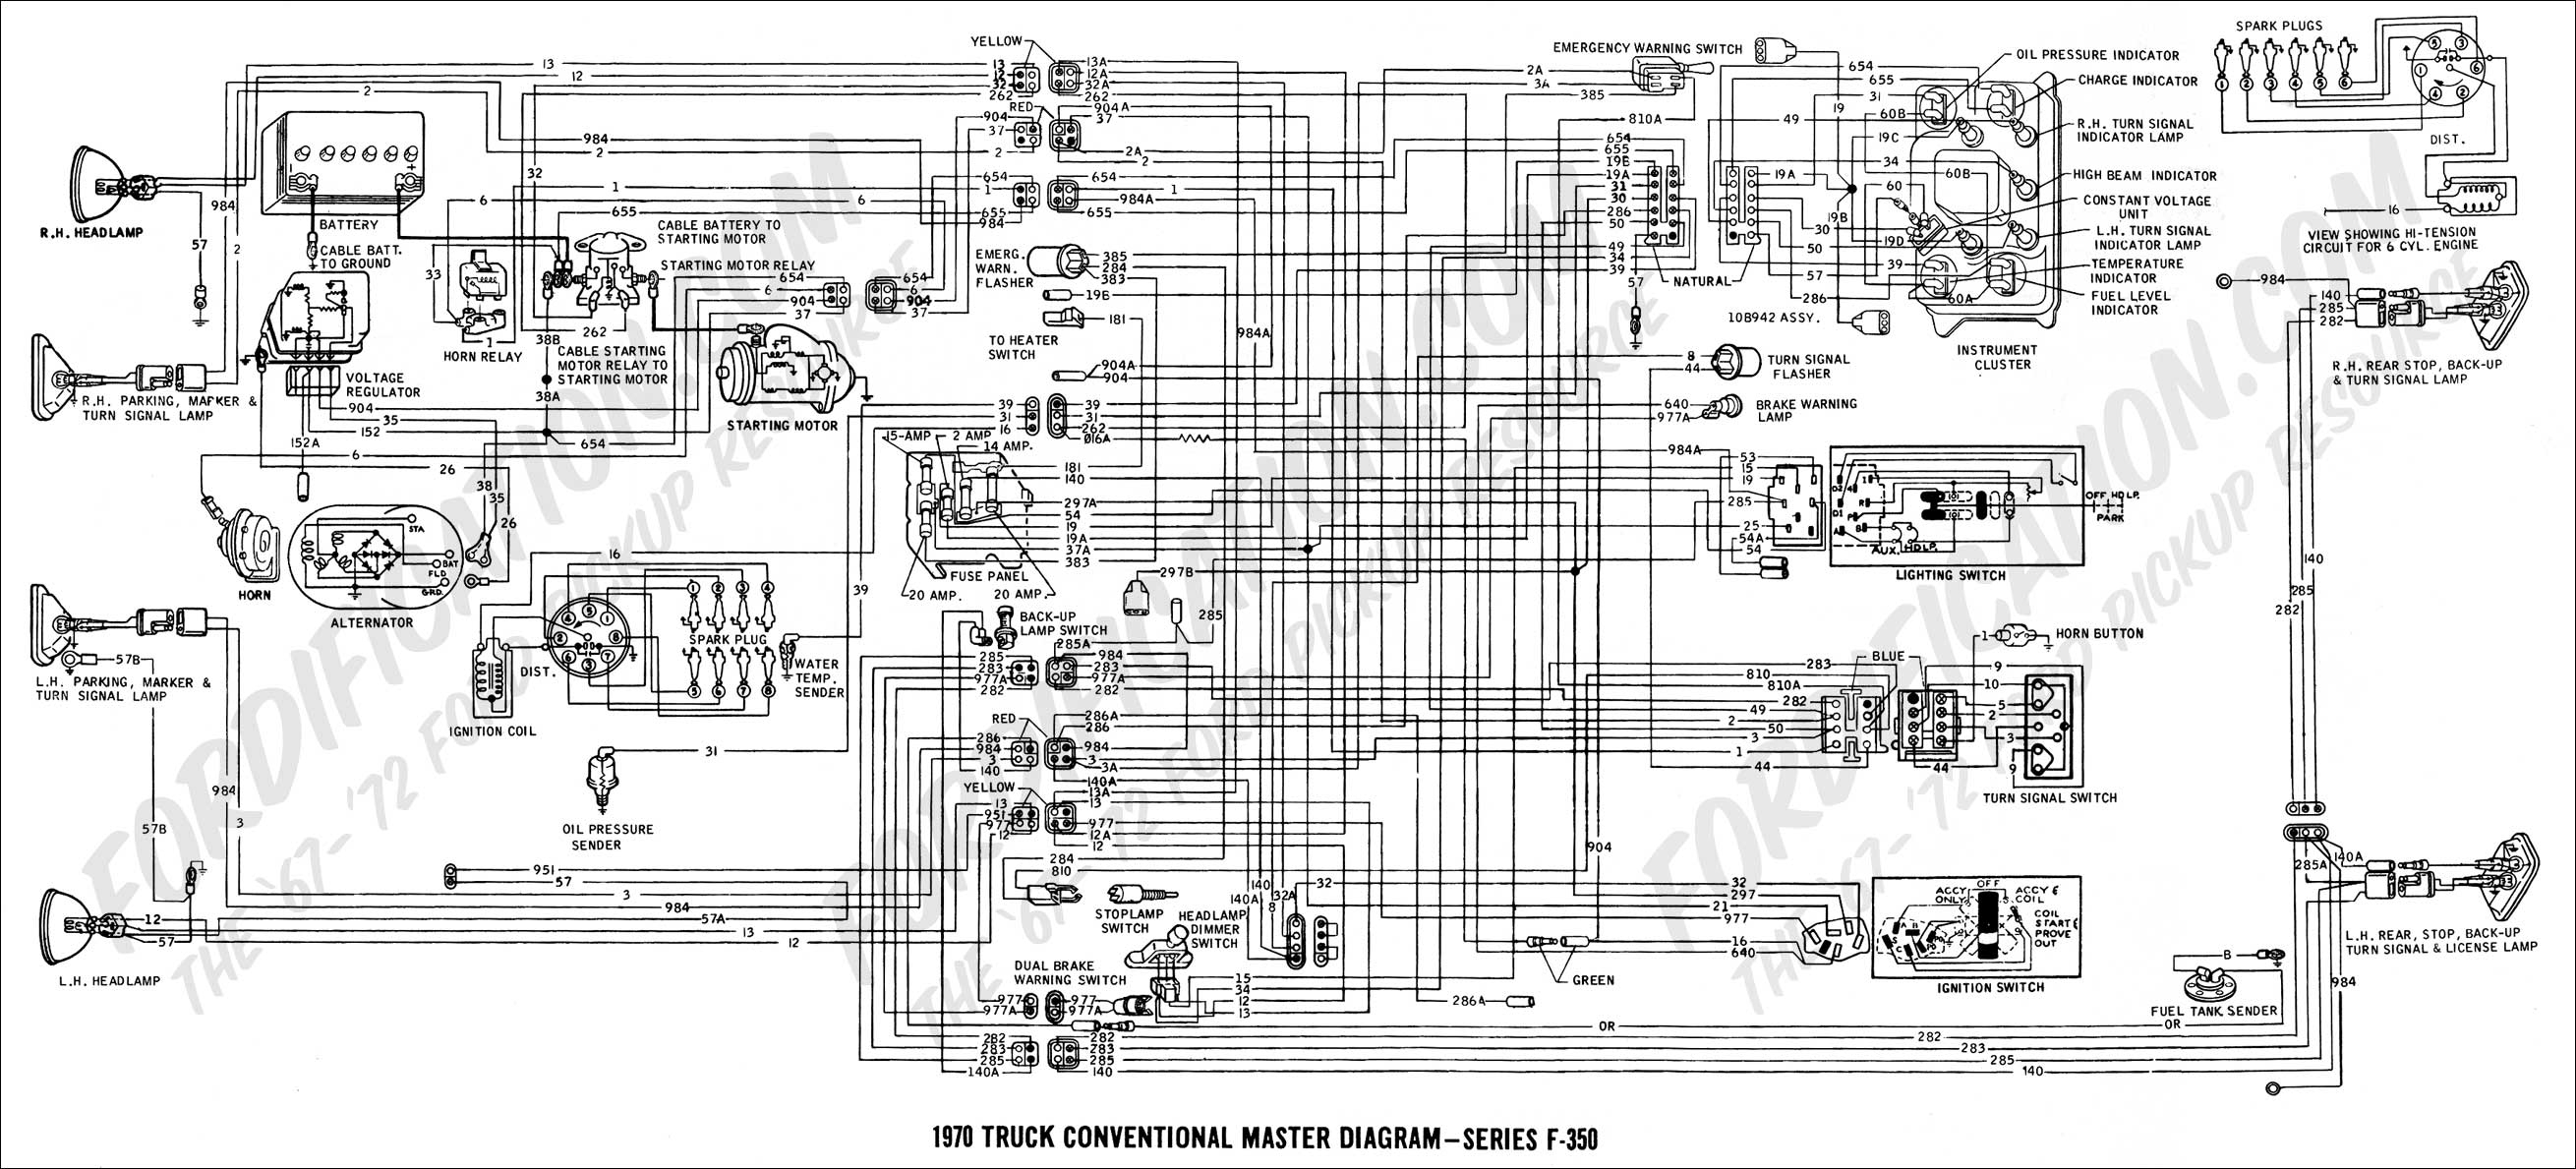 Electric Trailer Brake Wiring Diagrams Ford | Wiring Diagram - Ford F250 Brake Controller Wiring Diagram